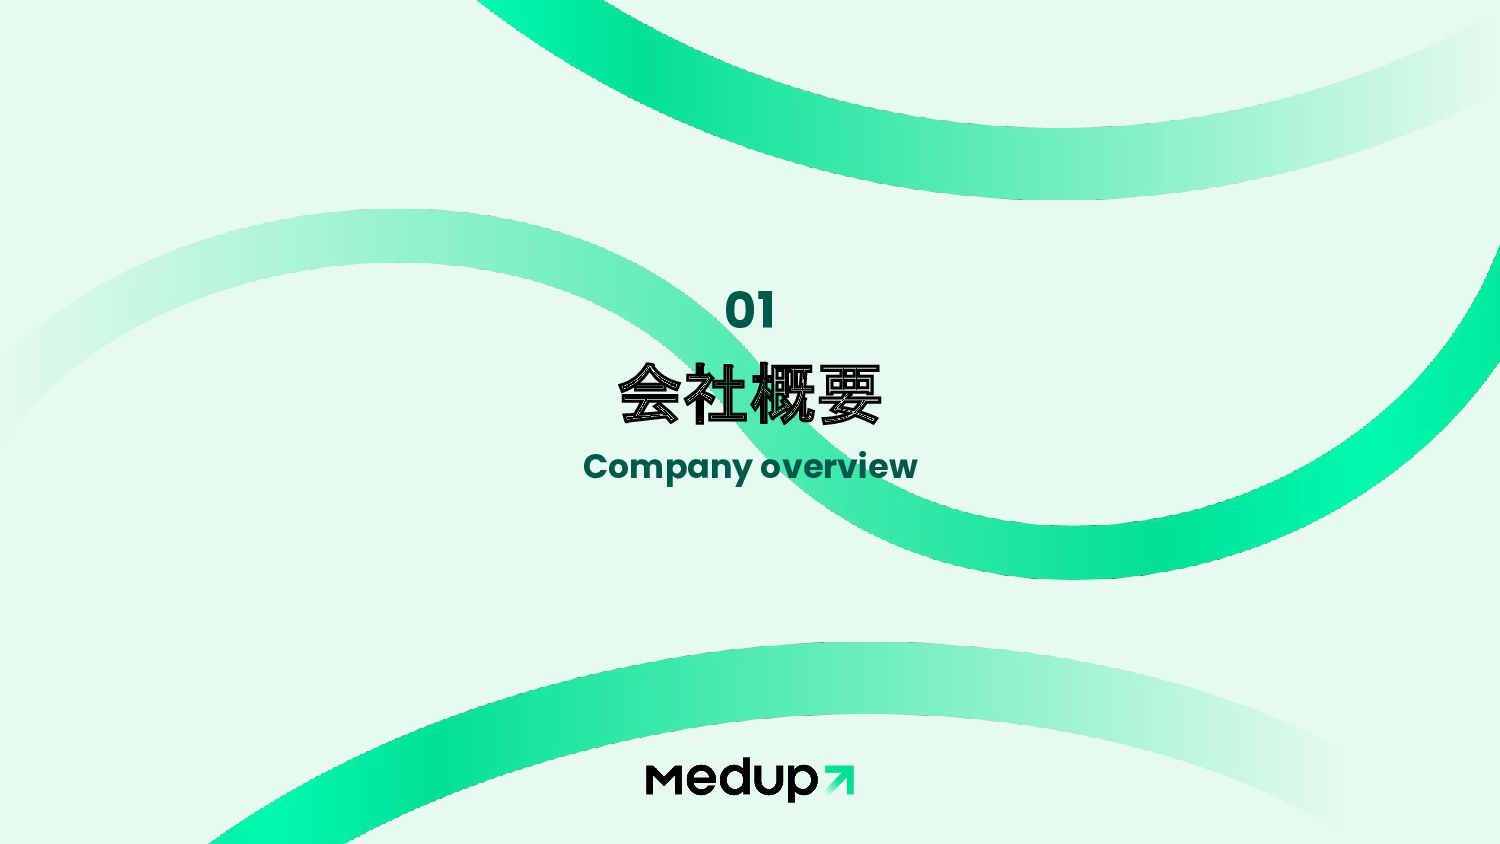 ໨࣍ Ver.1.0 Index Company overview ձࣾ֓ཁ 01. Busi...